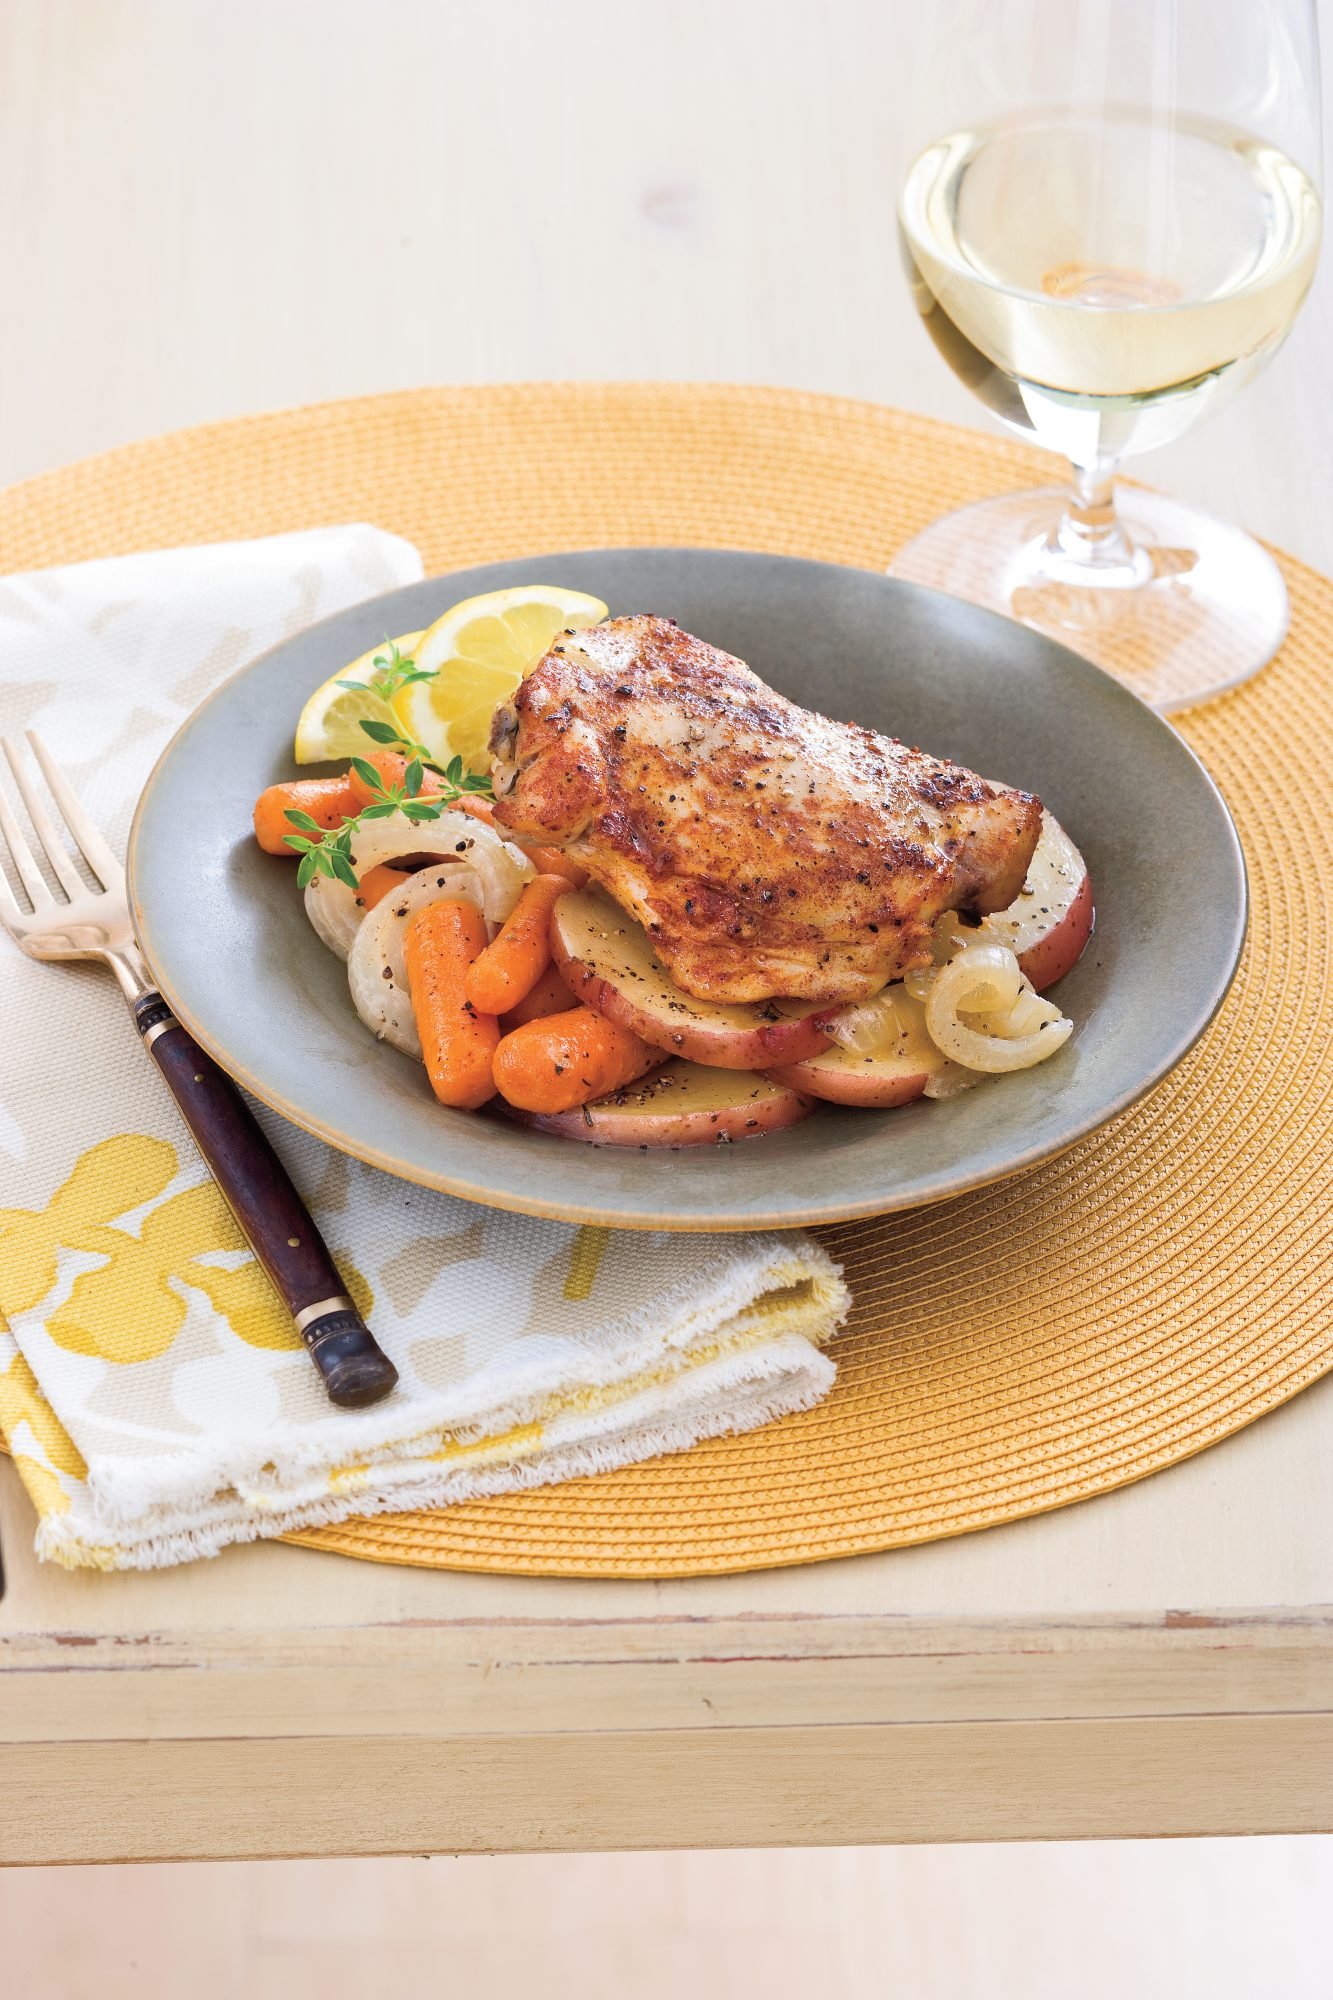 Slow Cooker Chicken Thighs With Carrots and Potatoes